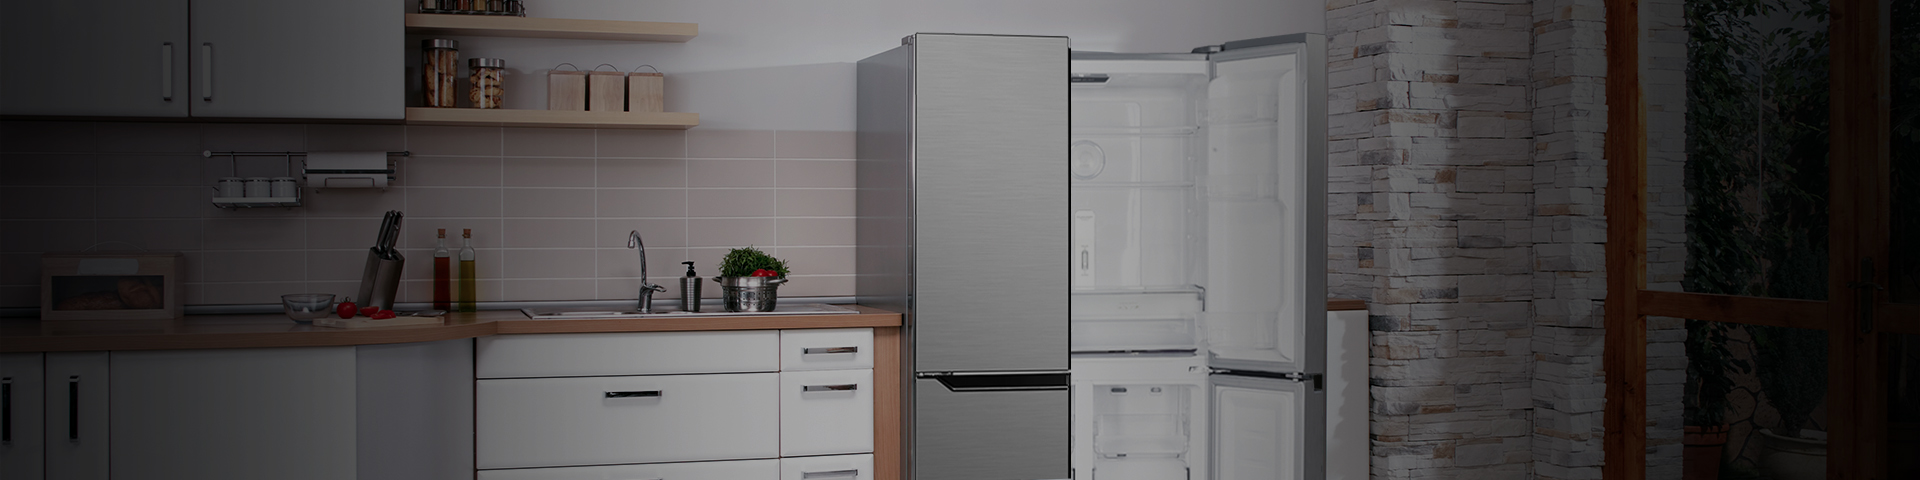 473L French Door Fridge